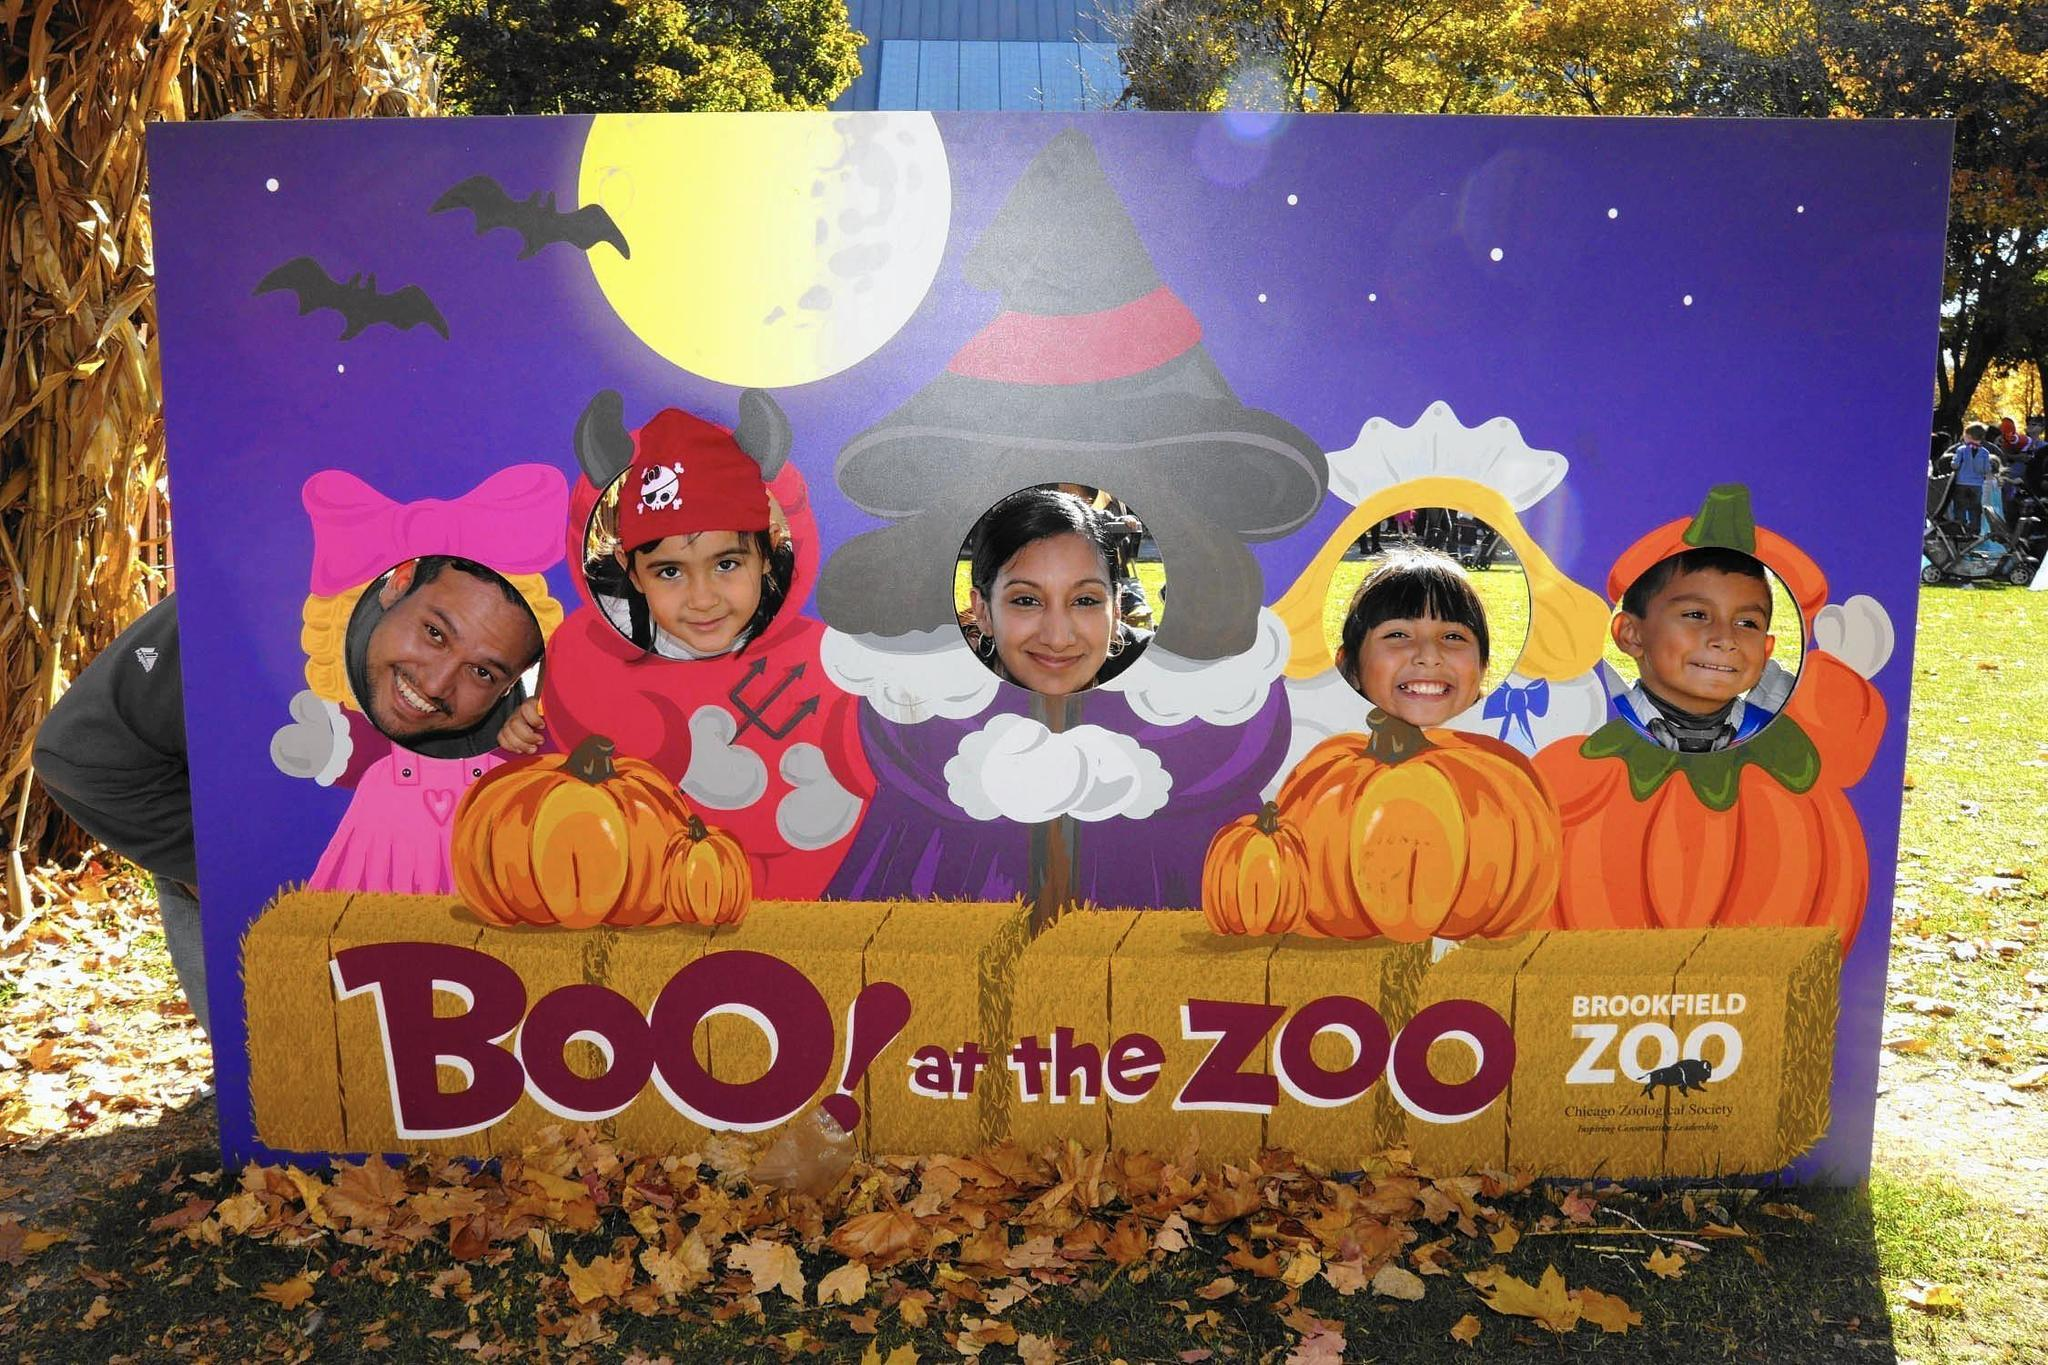 Say boo! Your guide to this year's Halloween fun - Skokie Review